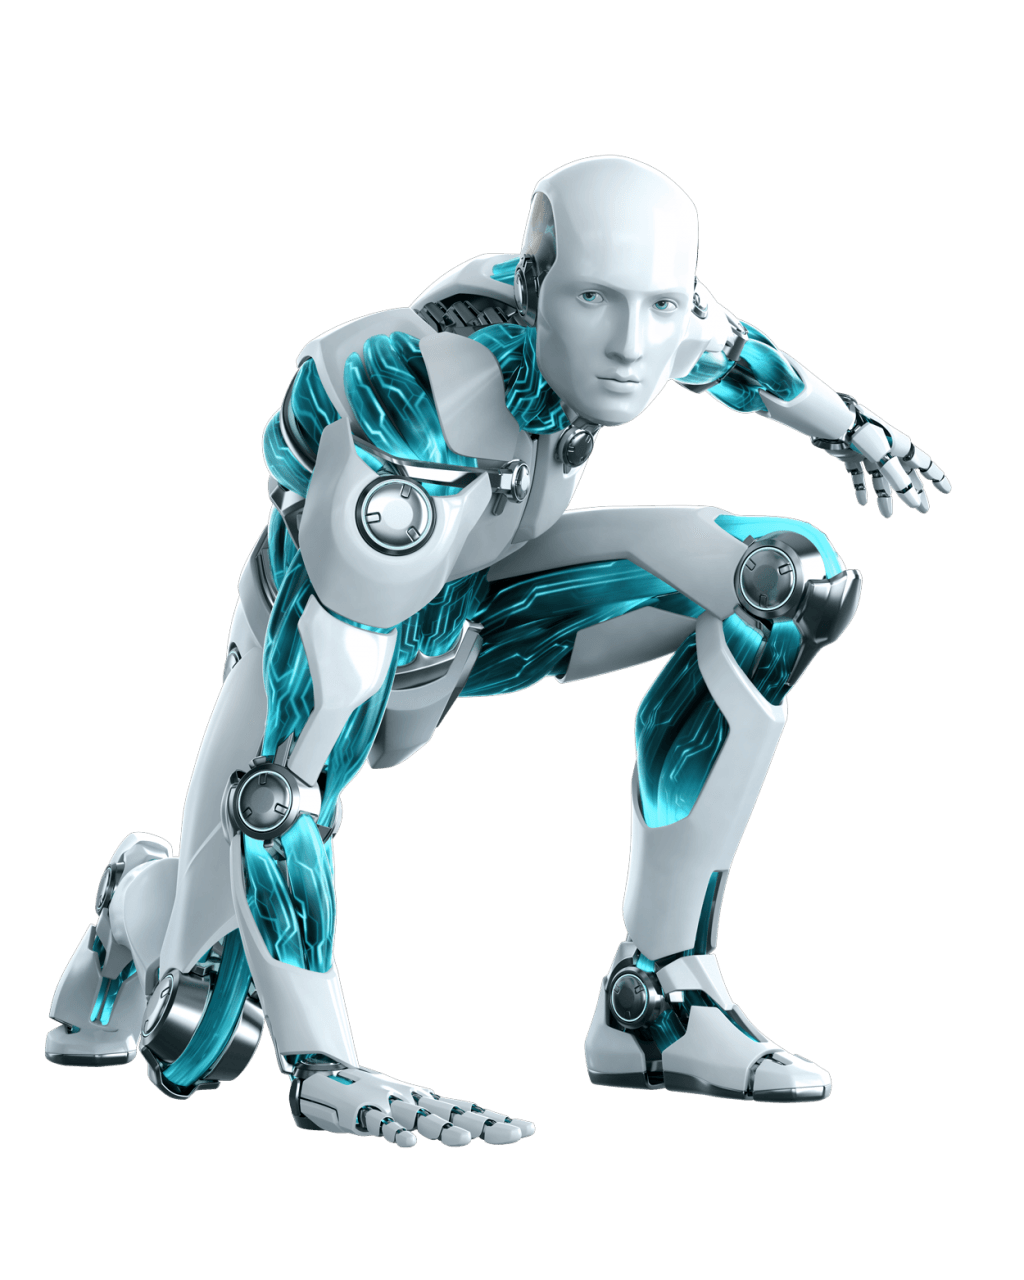 Robot PNG images free download